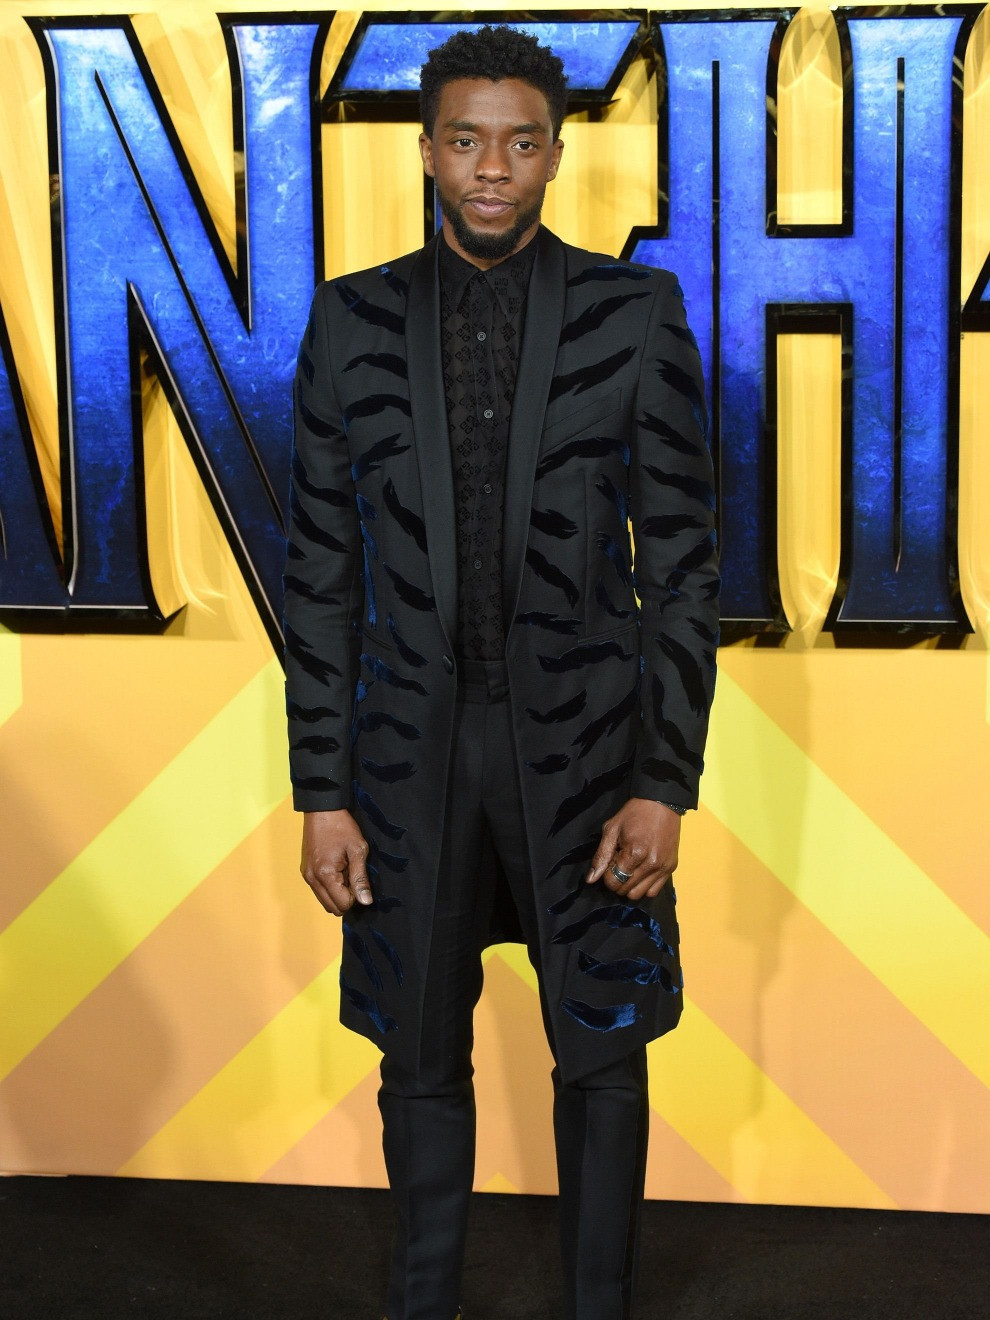 For the London premiere of Black Panther, Chadwick Boseman wore tiger striped Givenchy. Styled by Ashley Weston.